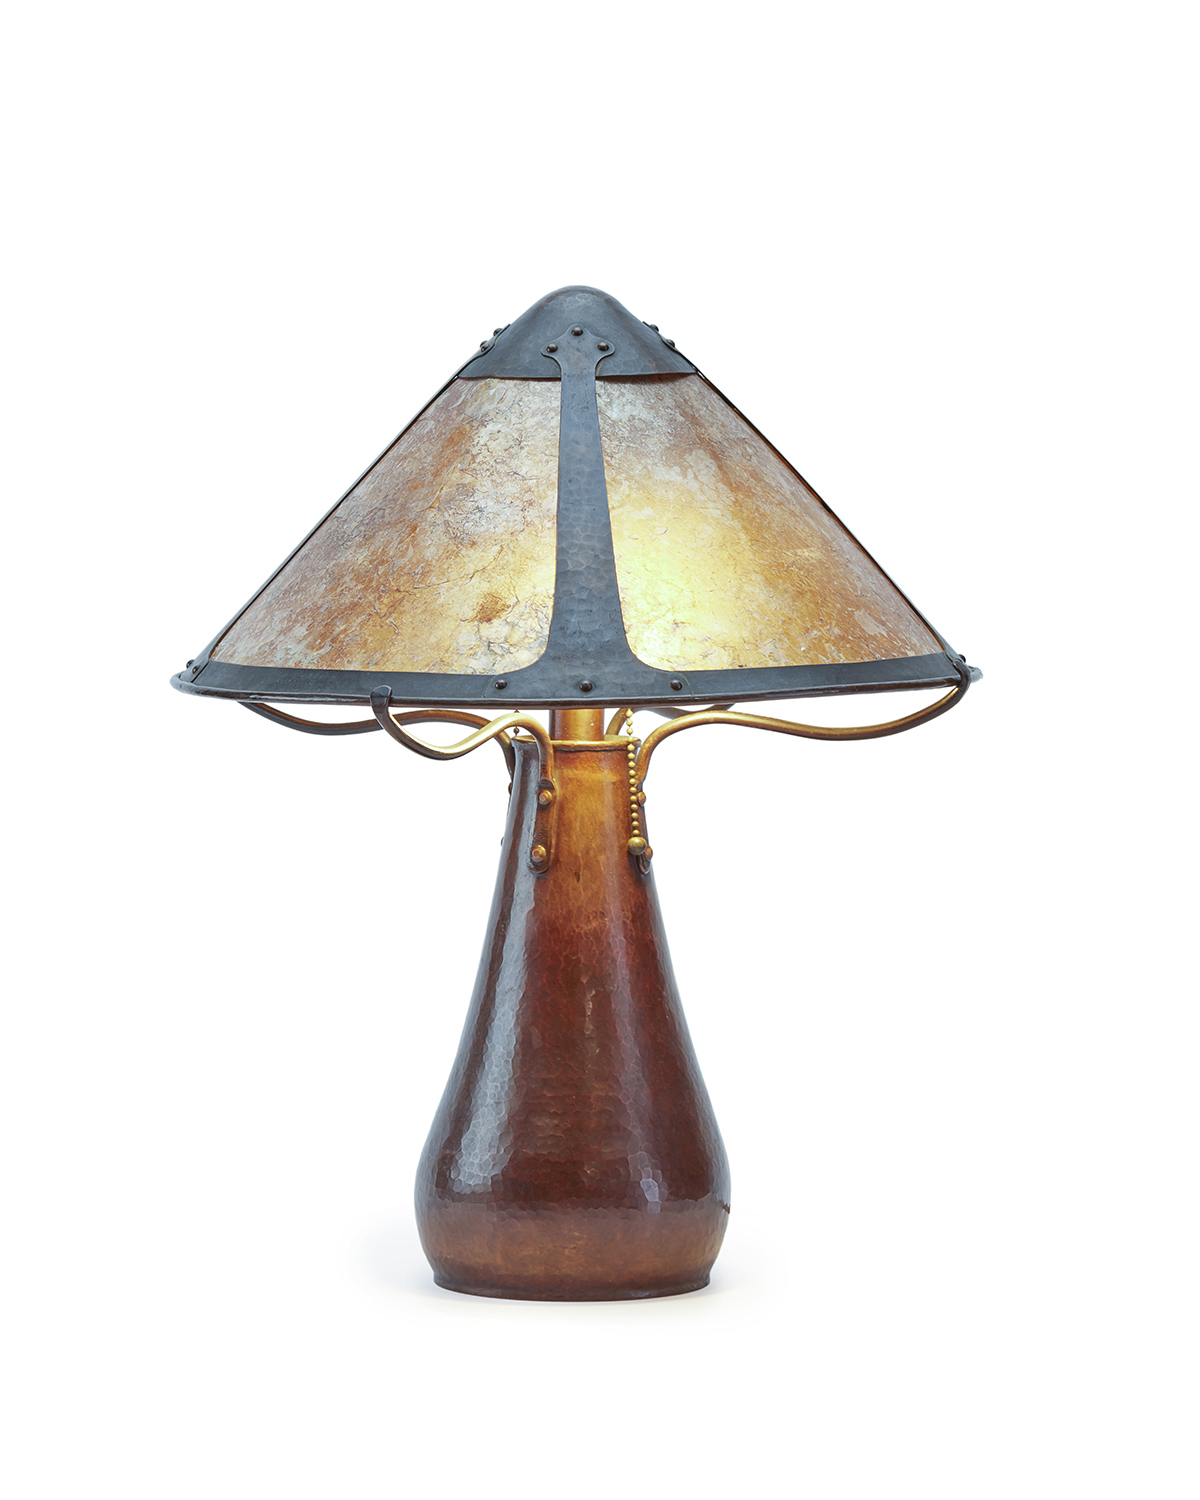 A hand hammered Dirk Van Erp table lamp with mica shade